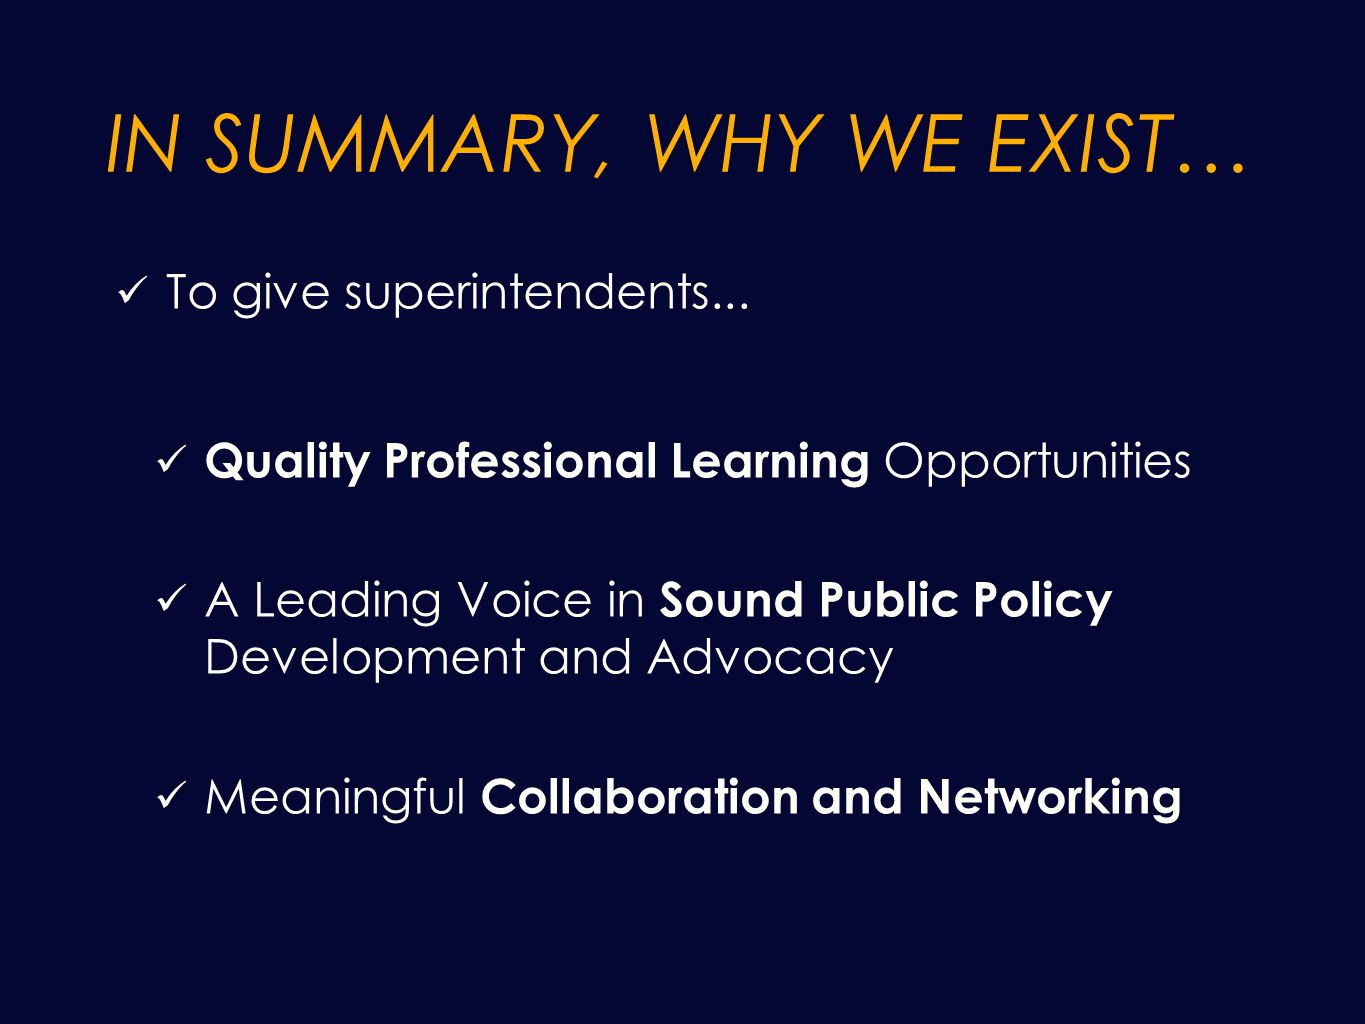 IN SUMMARY, WHY WE EXIST… To give superintendents...